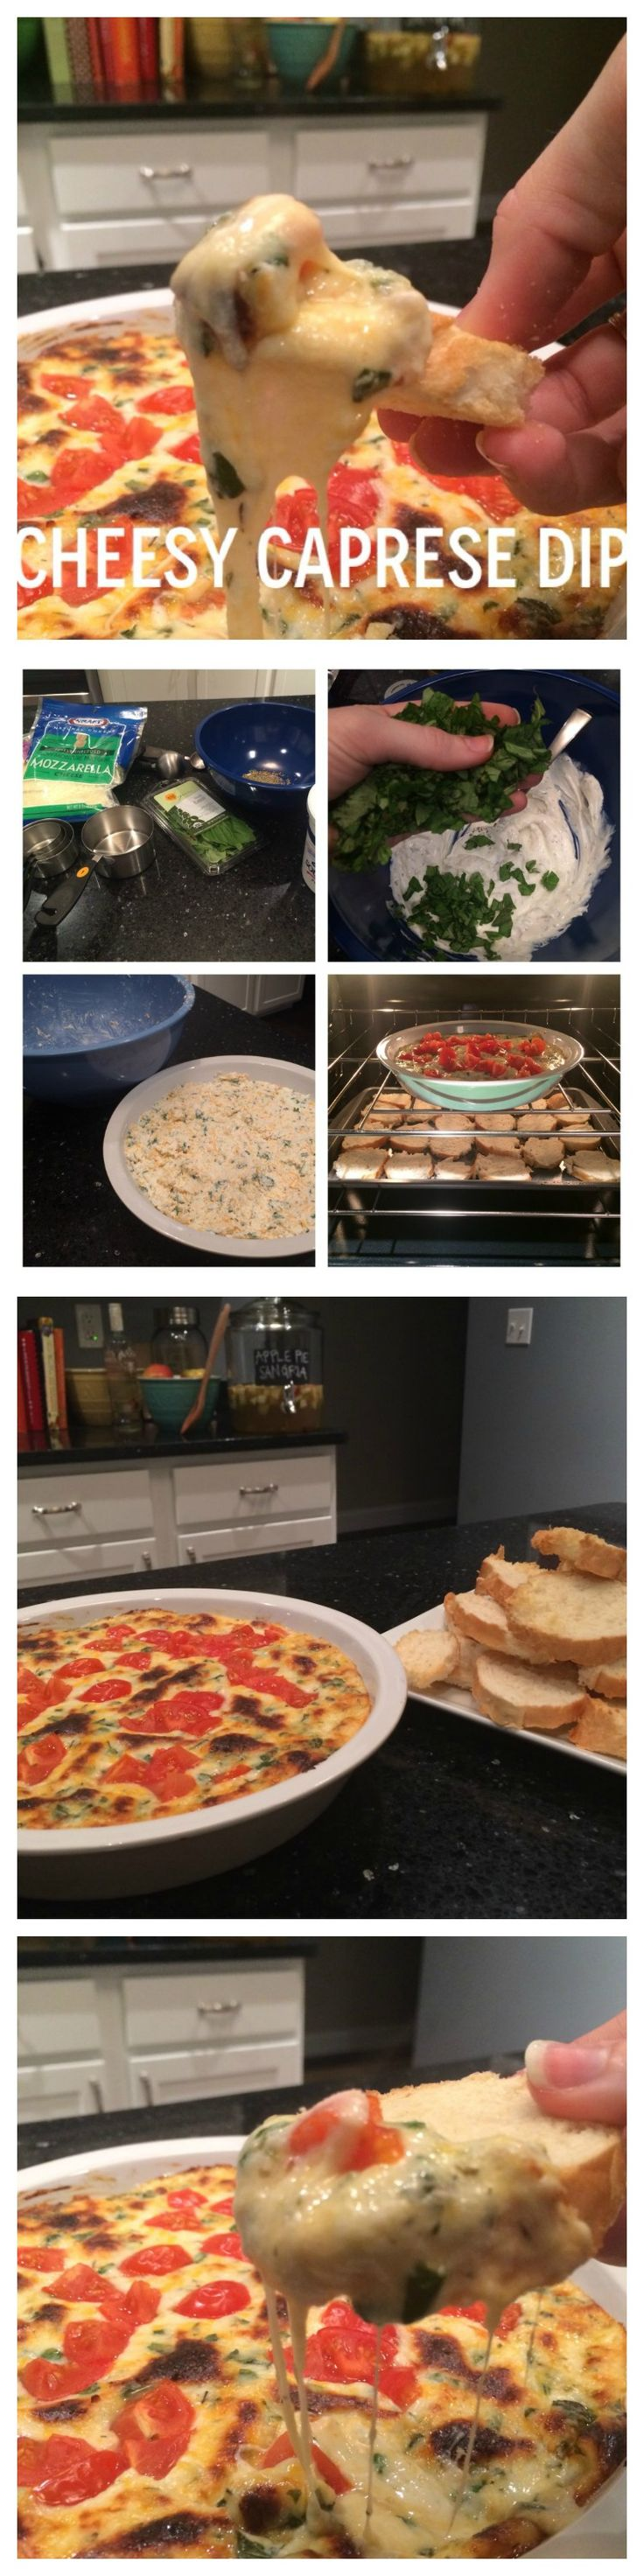 CHEESY CAPRESE DIP!! the absolute best cheese dip you will ever eat. cheese, basil, tomatoes, YUM {The Cookie Rookie}